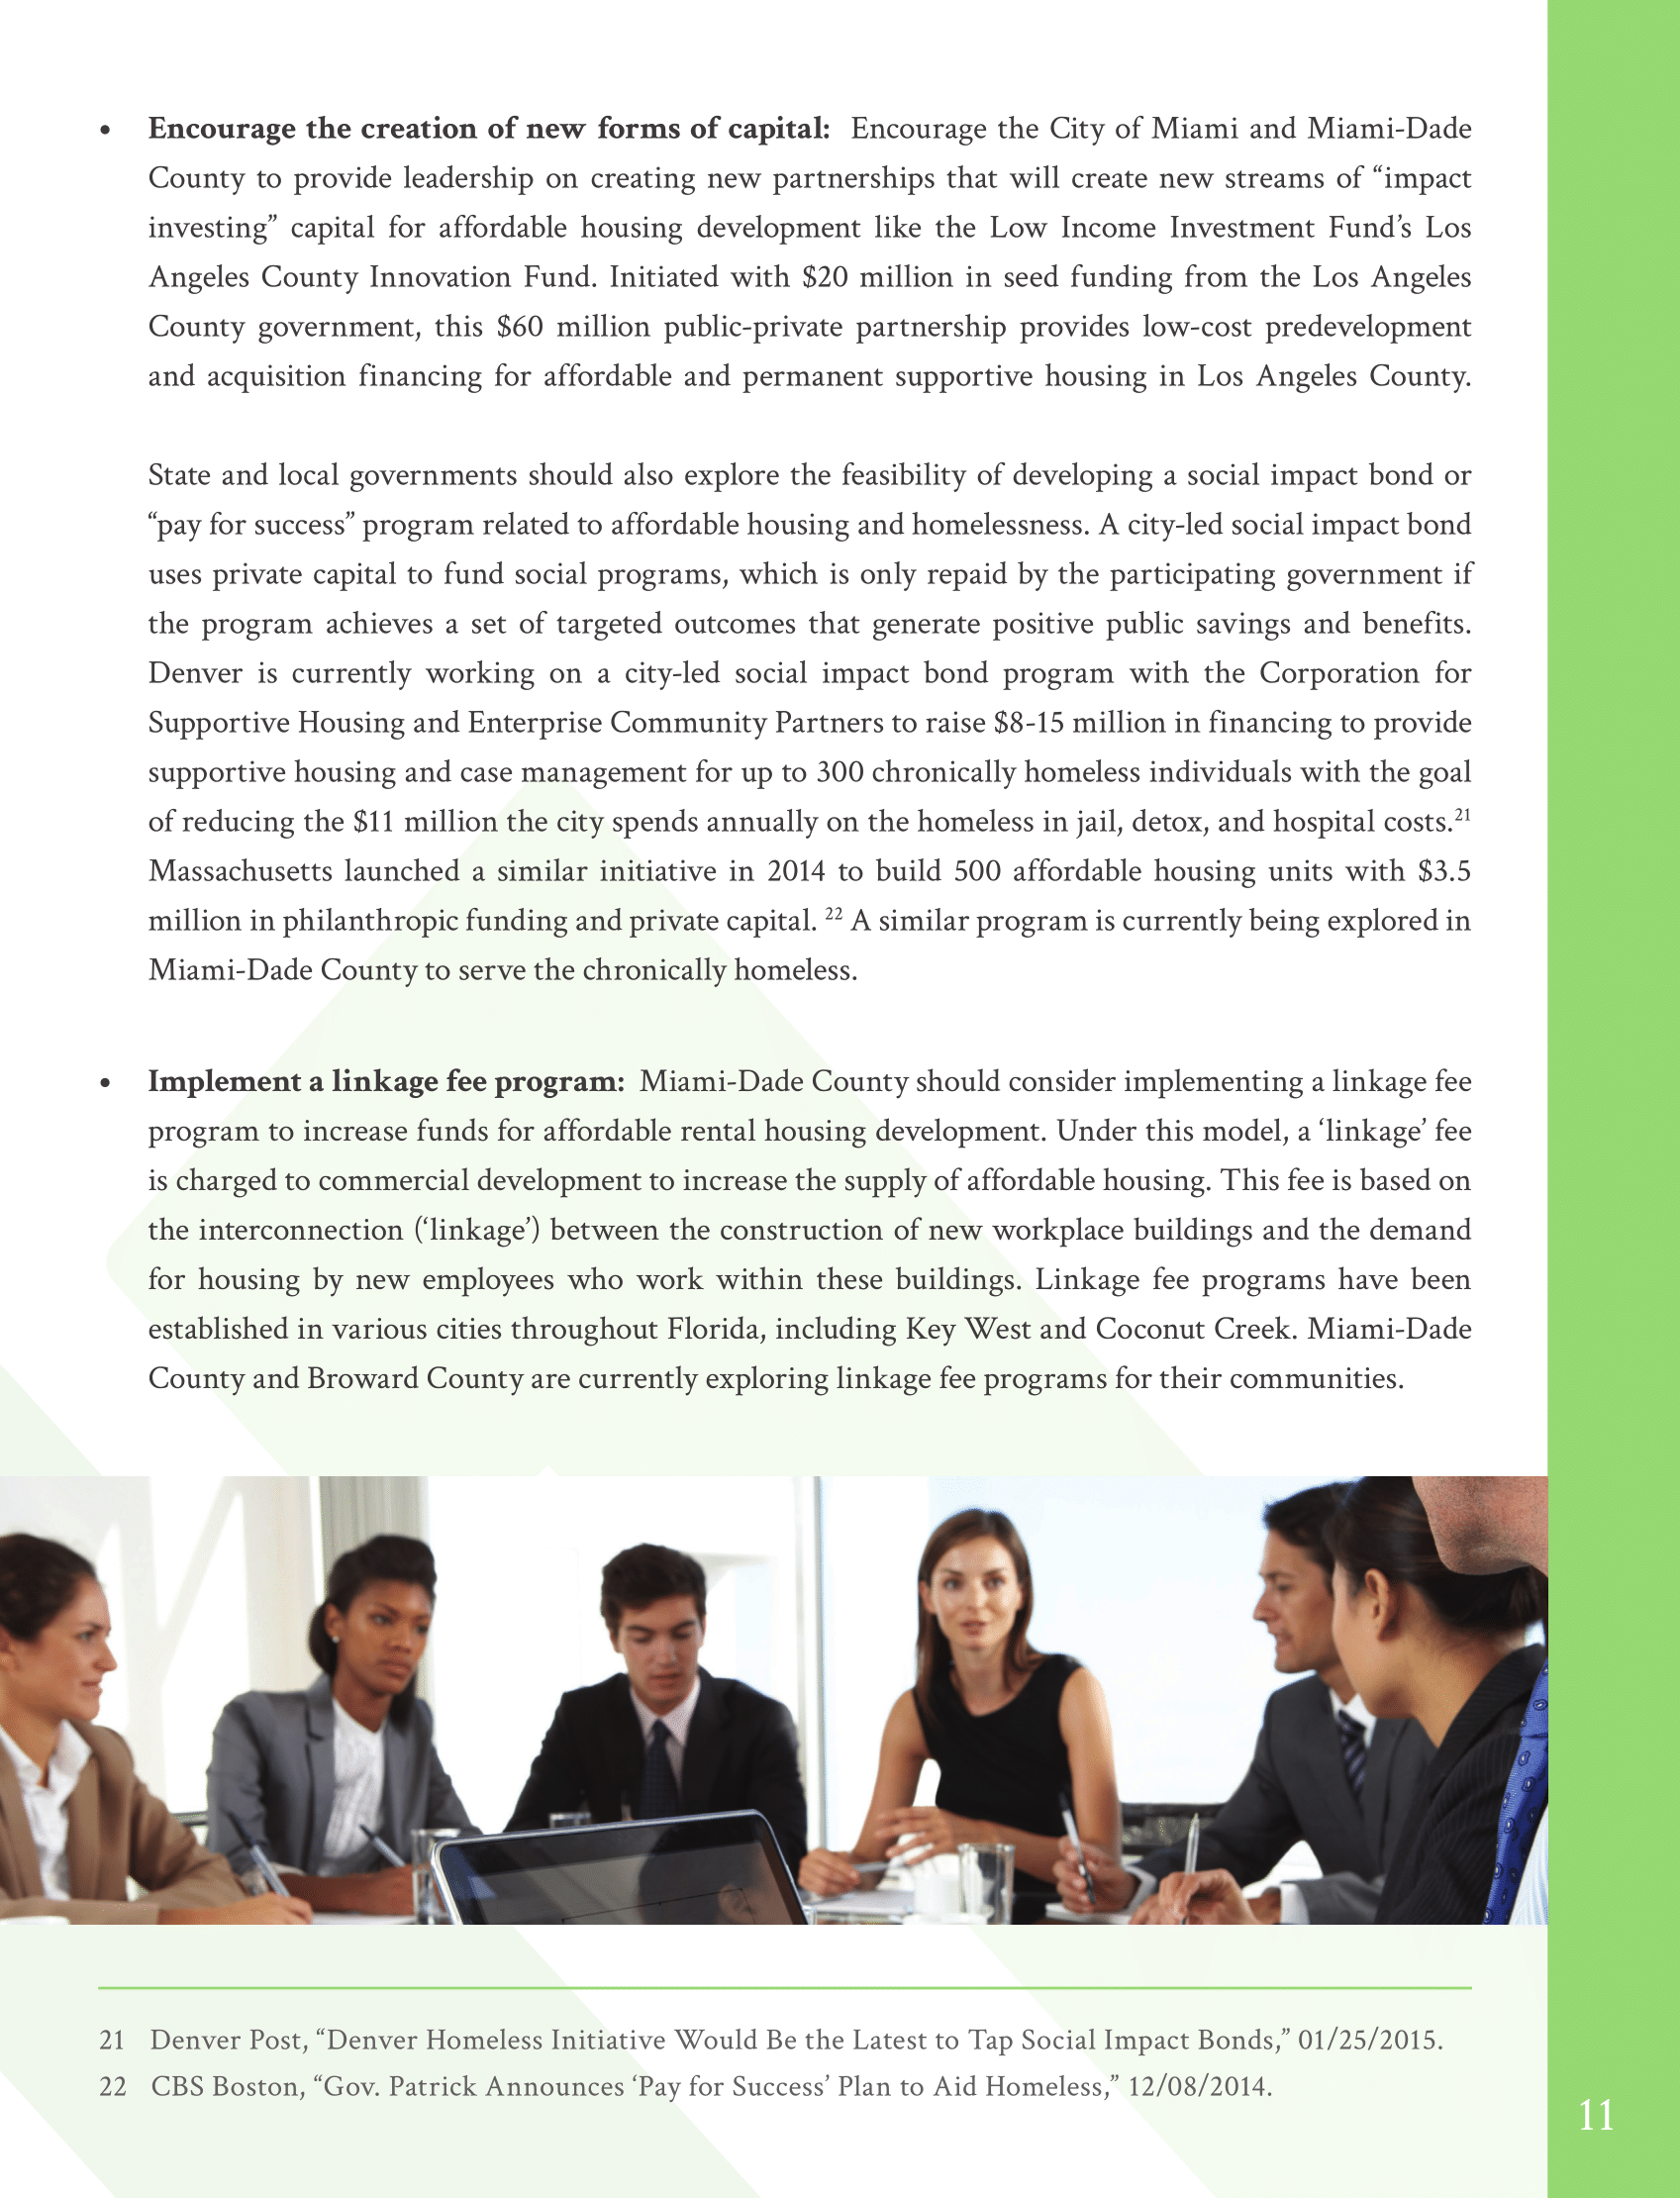 MHFA Policy Paper - 2016-11.png